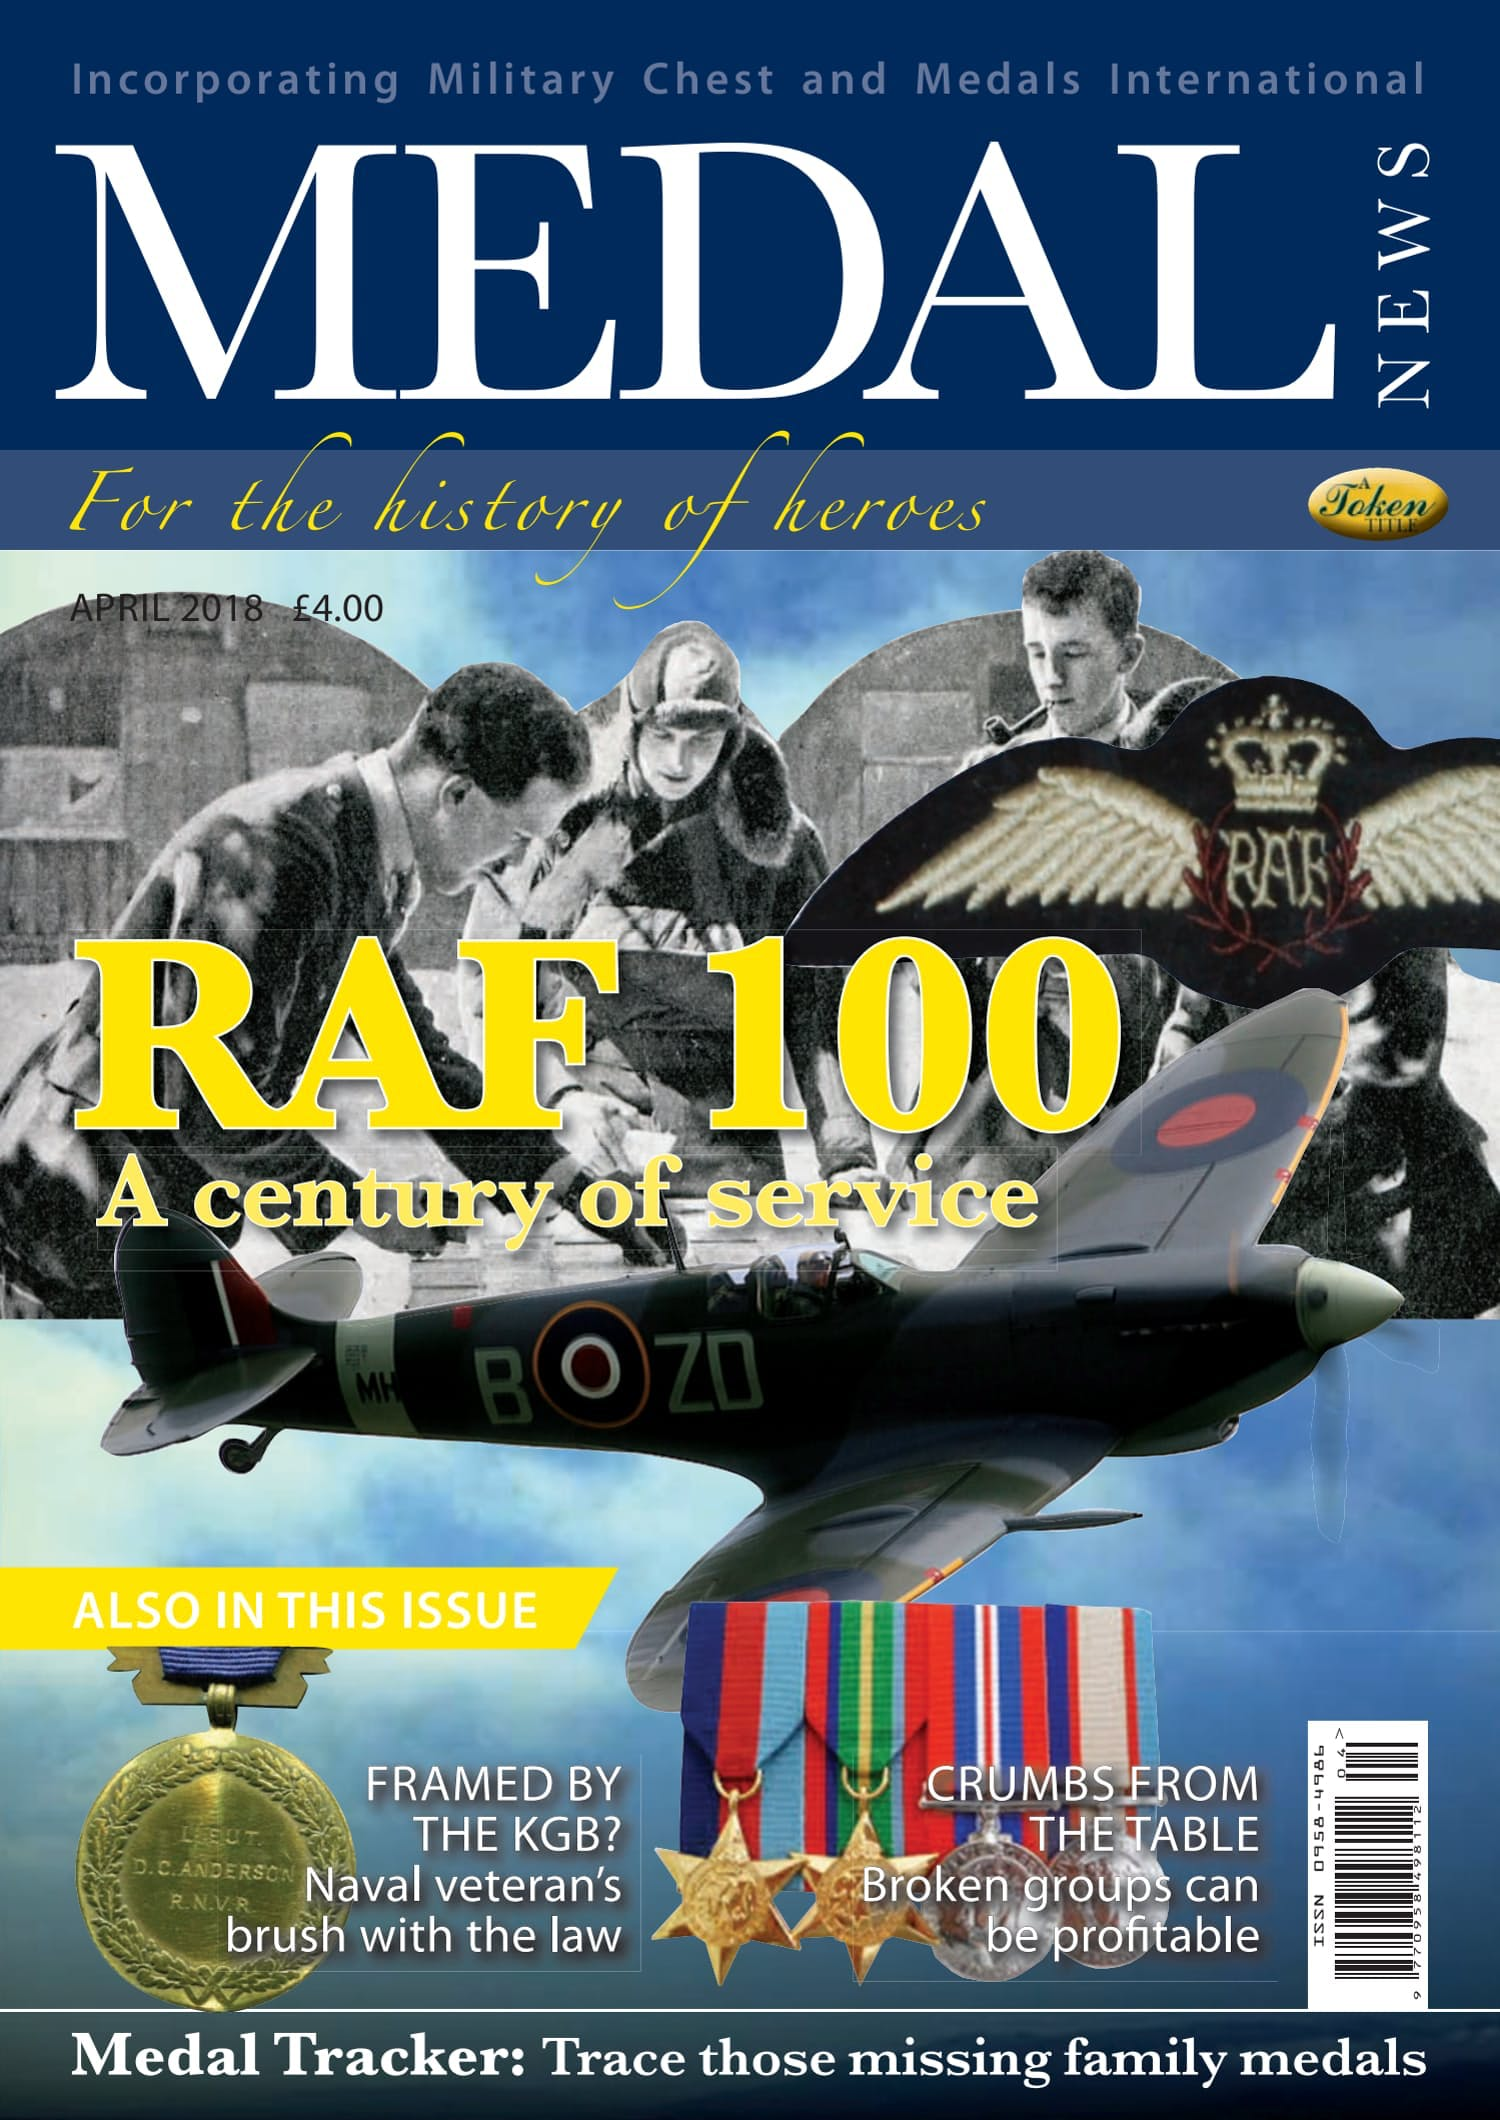 Front cover of 'RAF 100', Medal News April 2018, Volume 56, Number 4 by Token Publishing